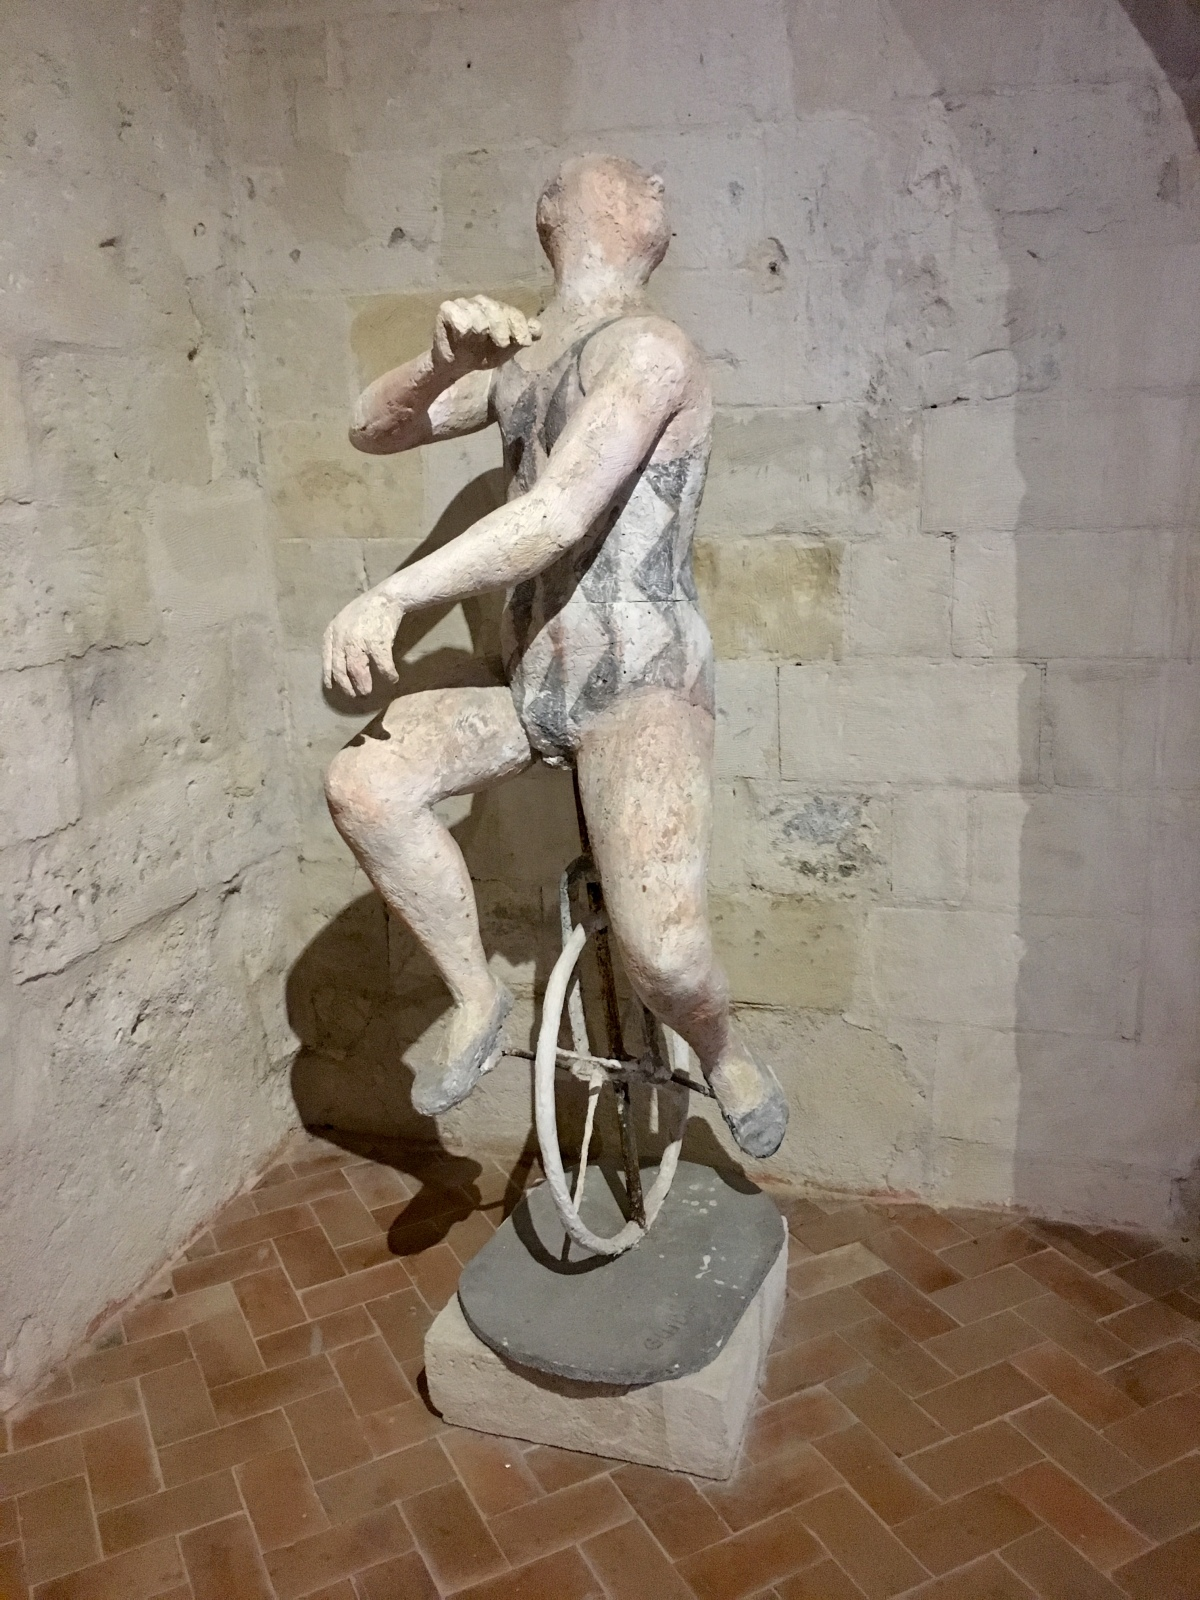 MUSMA, Matera's museum of modern sculpture set in a centuries-old cave.